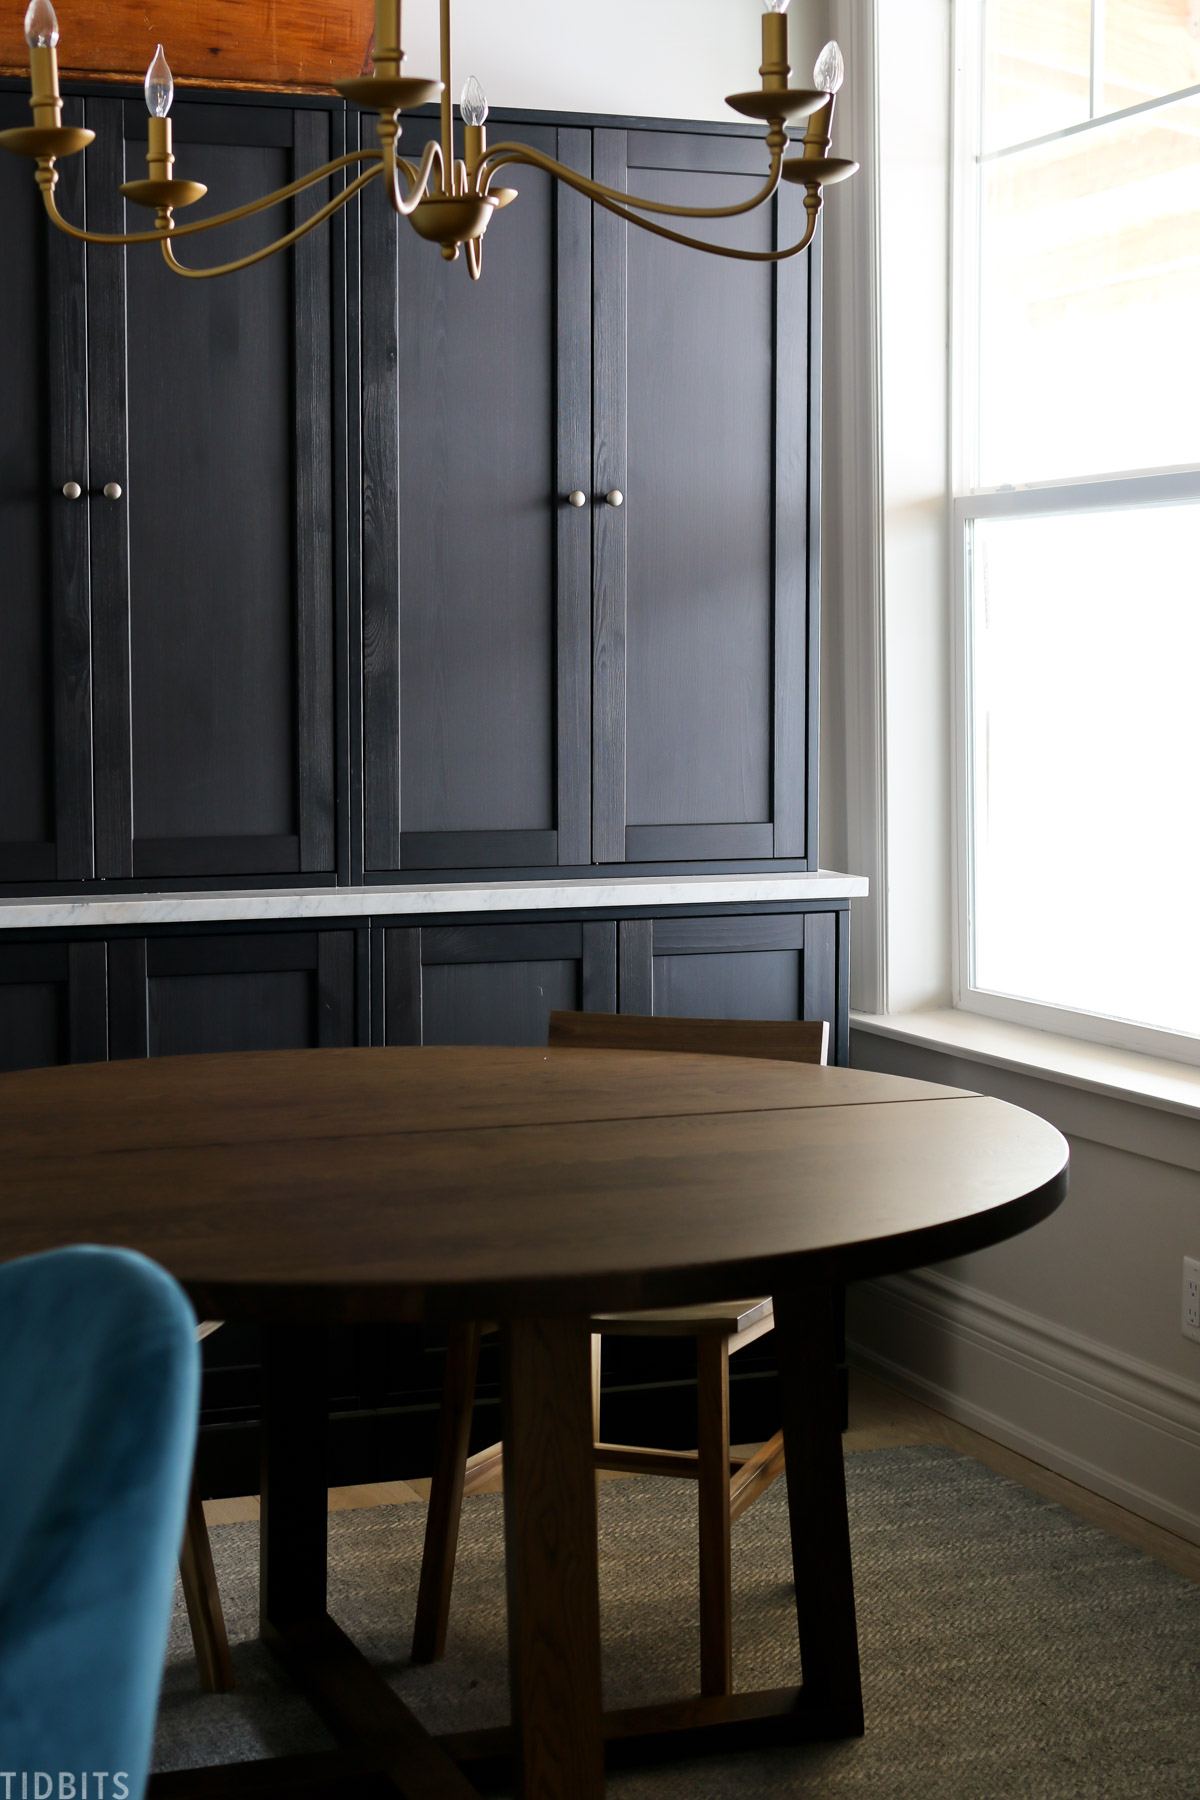 round table and chairs in front of black Havsta cabinets